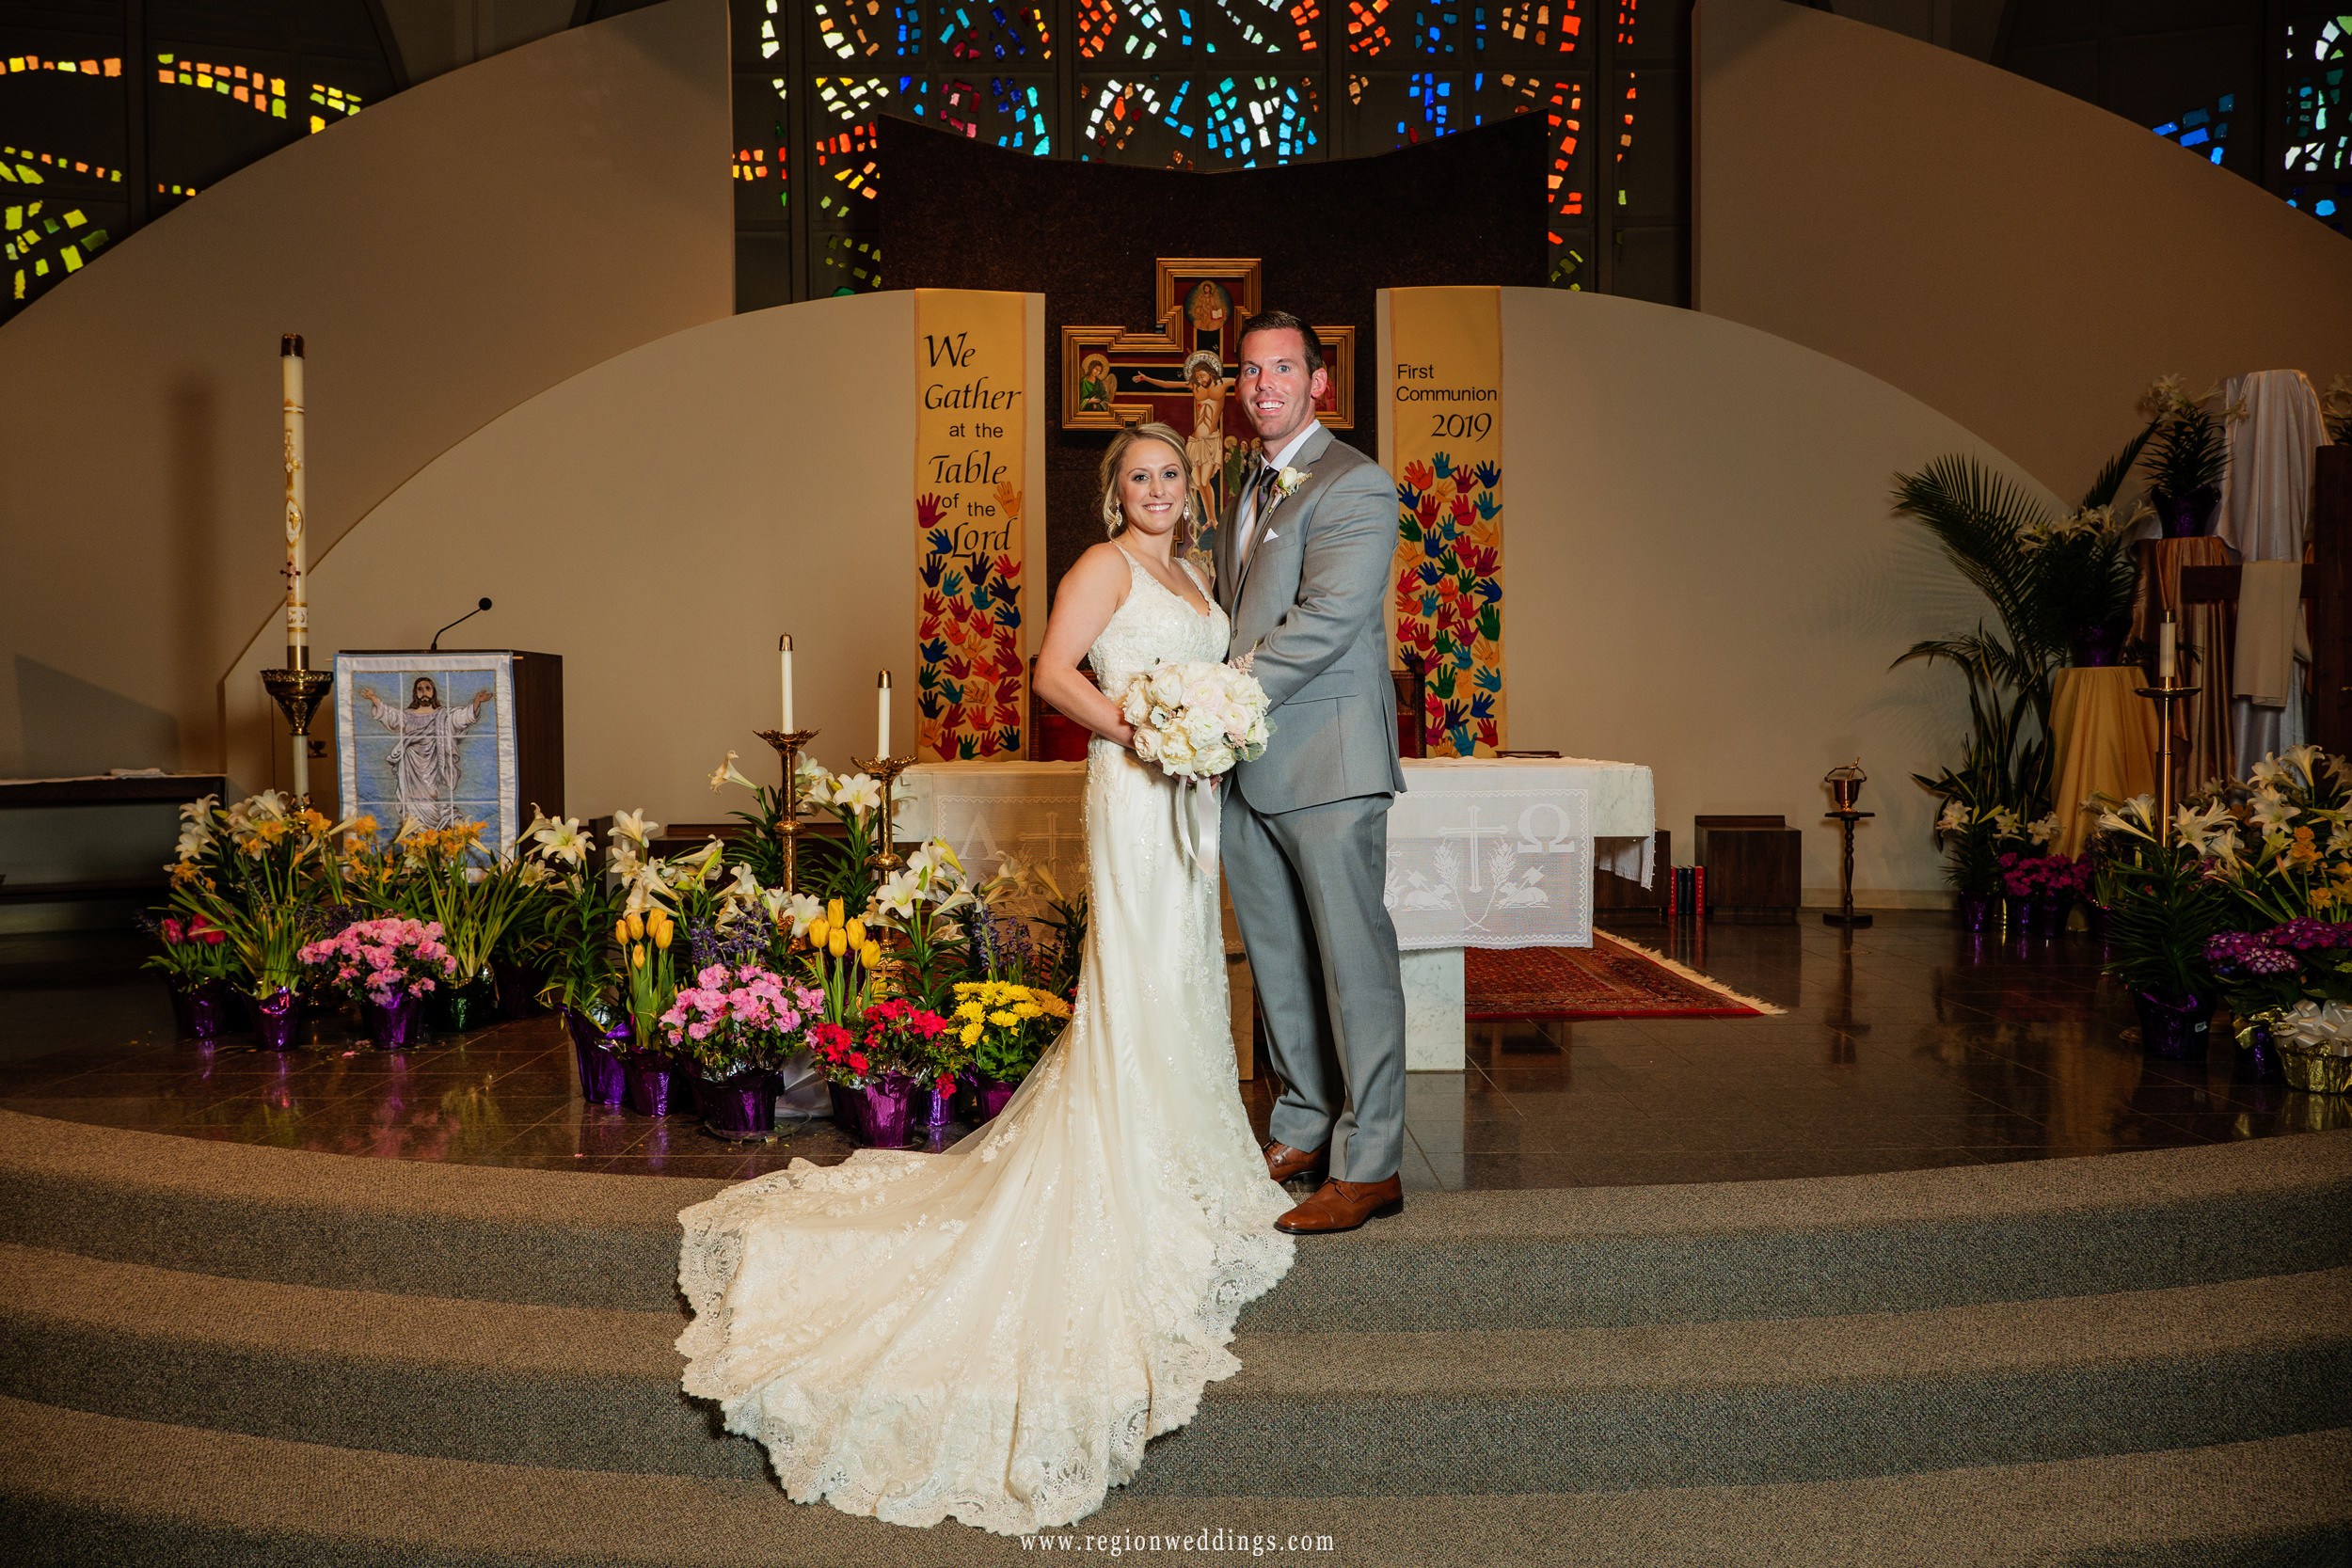 Bride and groom on the altar at St. Paul Catholic Church in Valparaiso, Indiana.